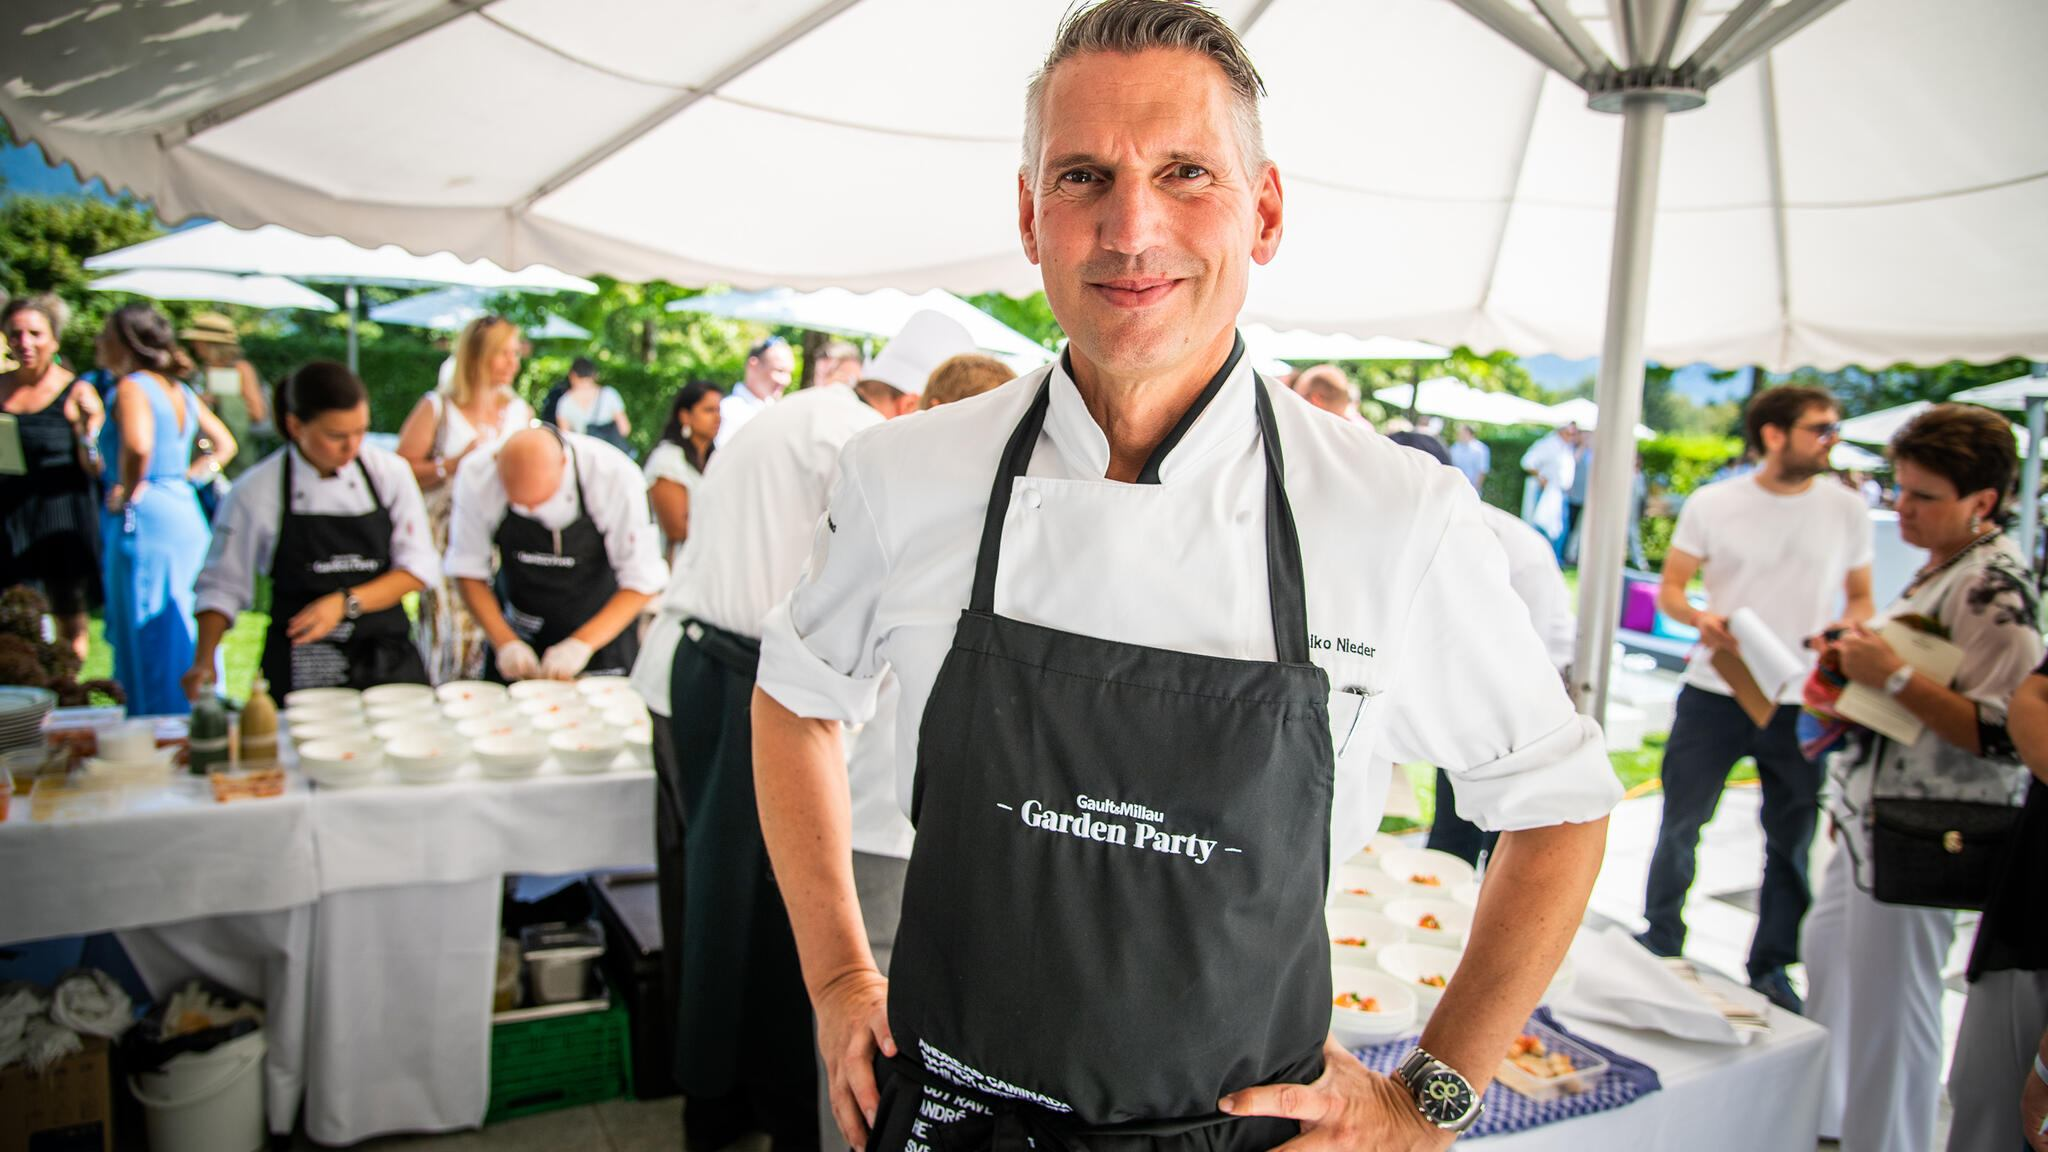 Heiko Nieder an der GaultMillau Garden Party in Bad Ragaz